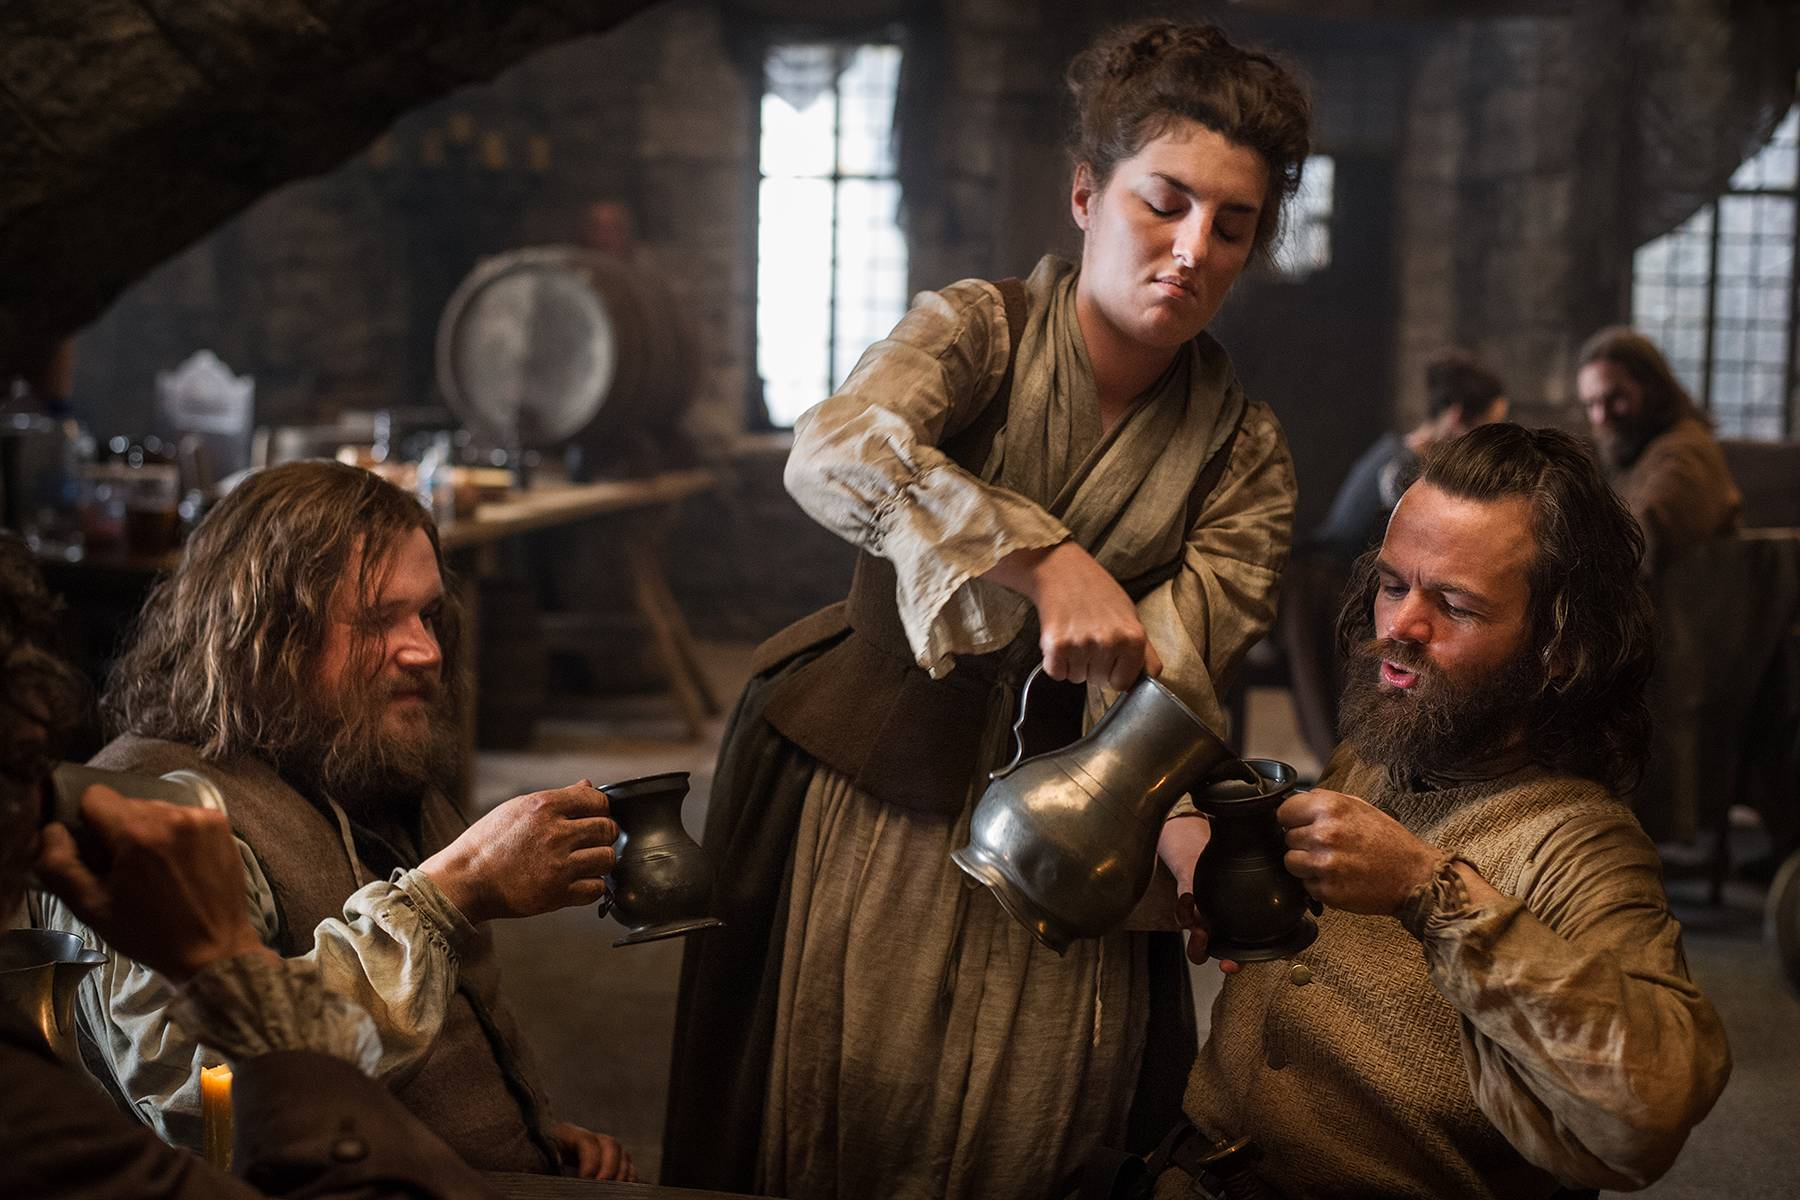 Stephen Walters (Angus Mhor), Caitriona Balfe (Claire Randall Fraser), Duncan Lacroix (Murtagh Fitzgibbons), and Grant O'Rourke (Rupert Mackenzie)